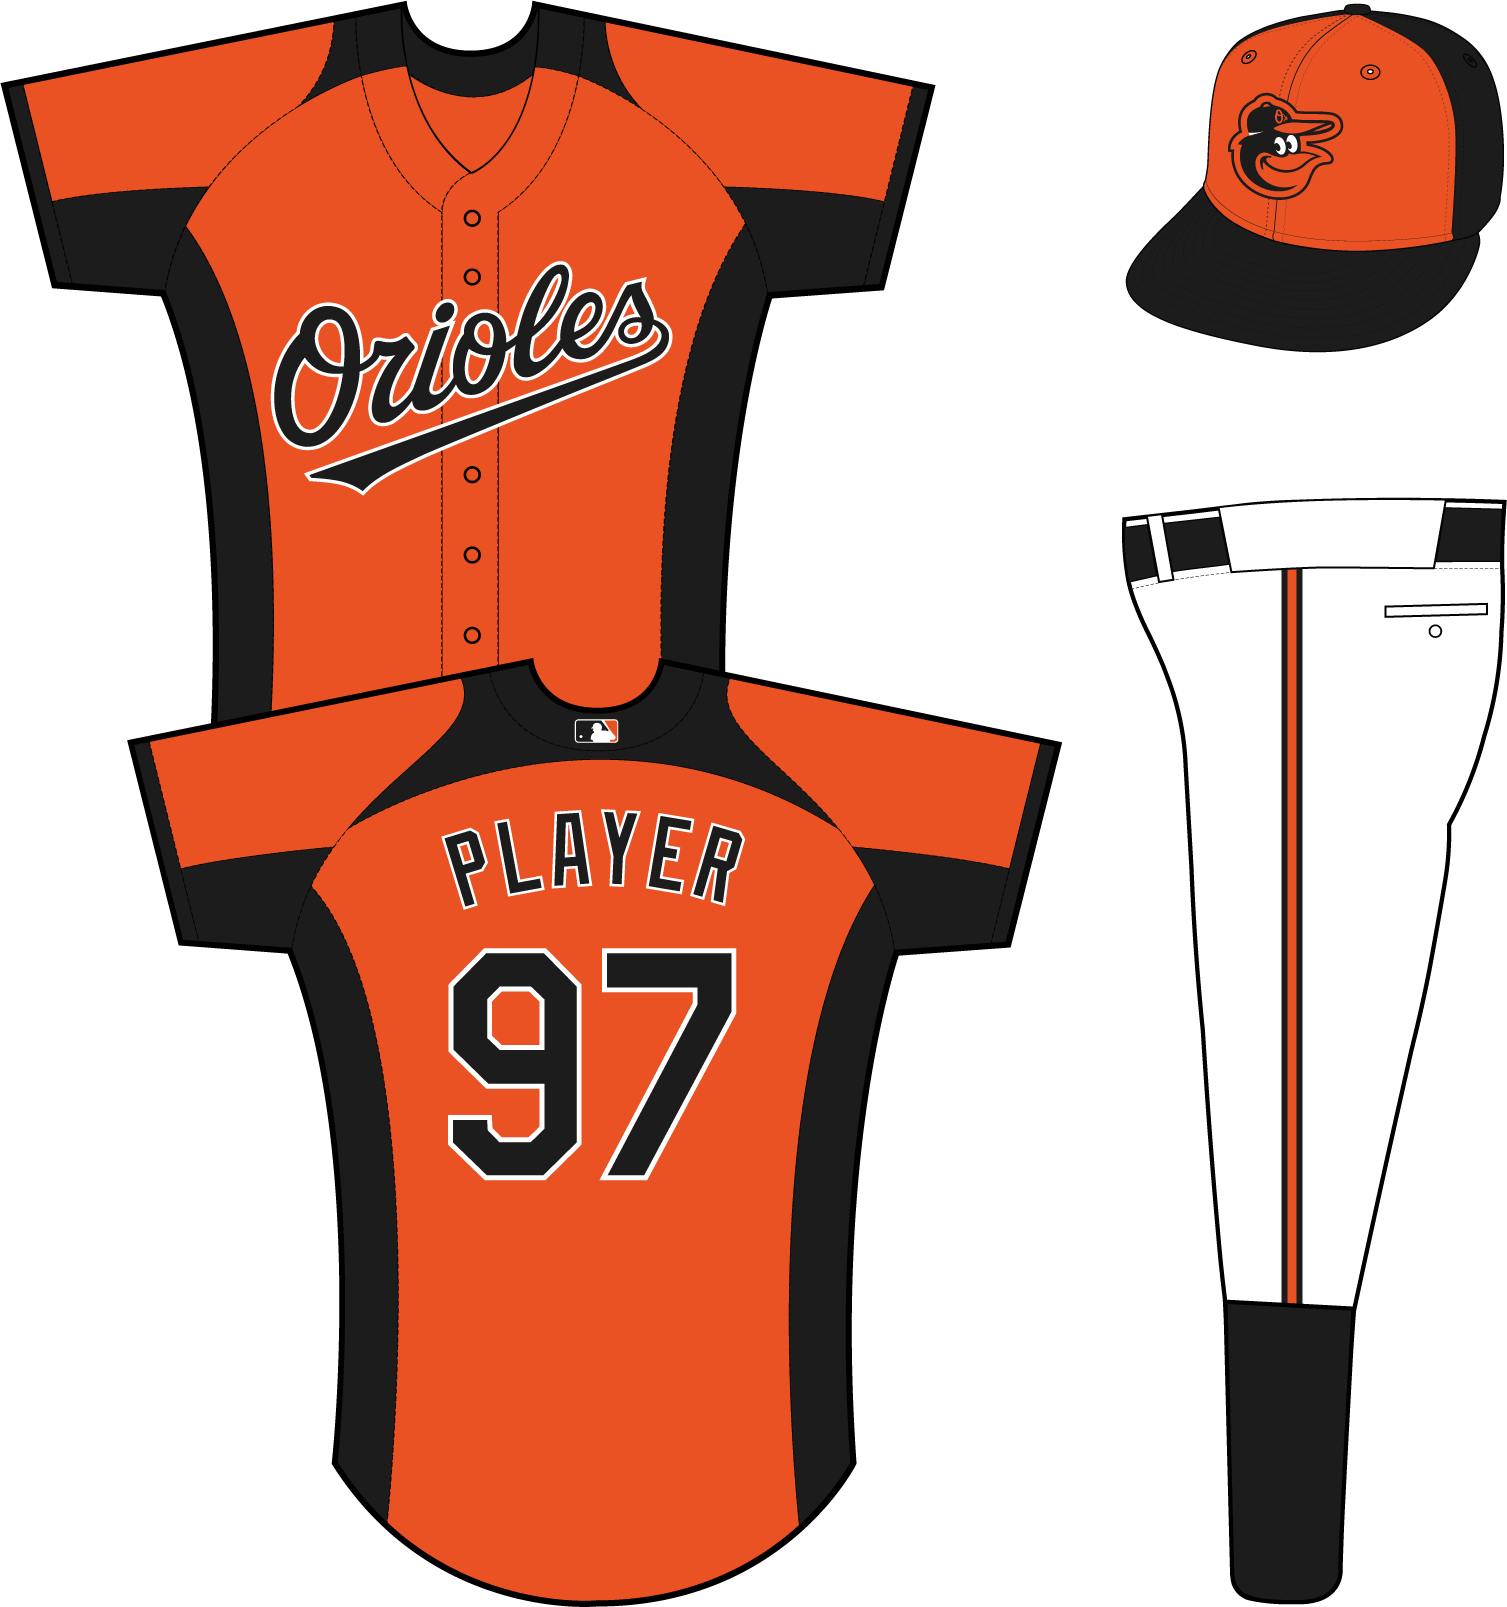 Baltimore Orioles Uniform Practice Uniform (2013-Pres) - (Home BP) Orioles in black with a white outline on an orange uniform with black collar, sleeve end, underarm, and side panels SportsLogos.Net